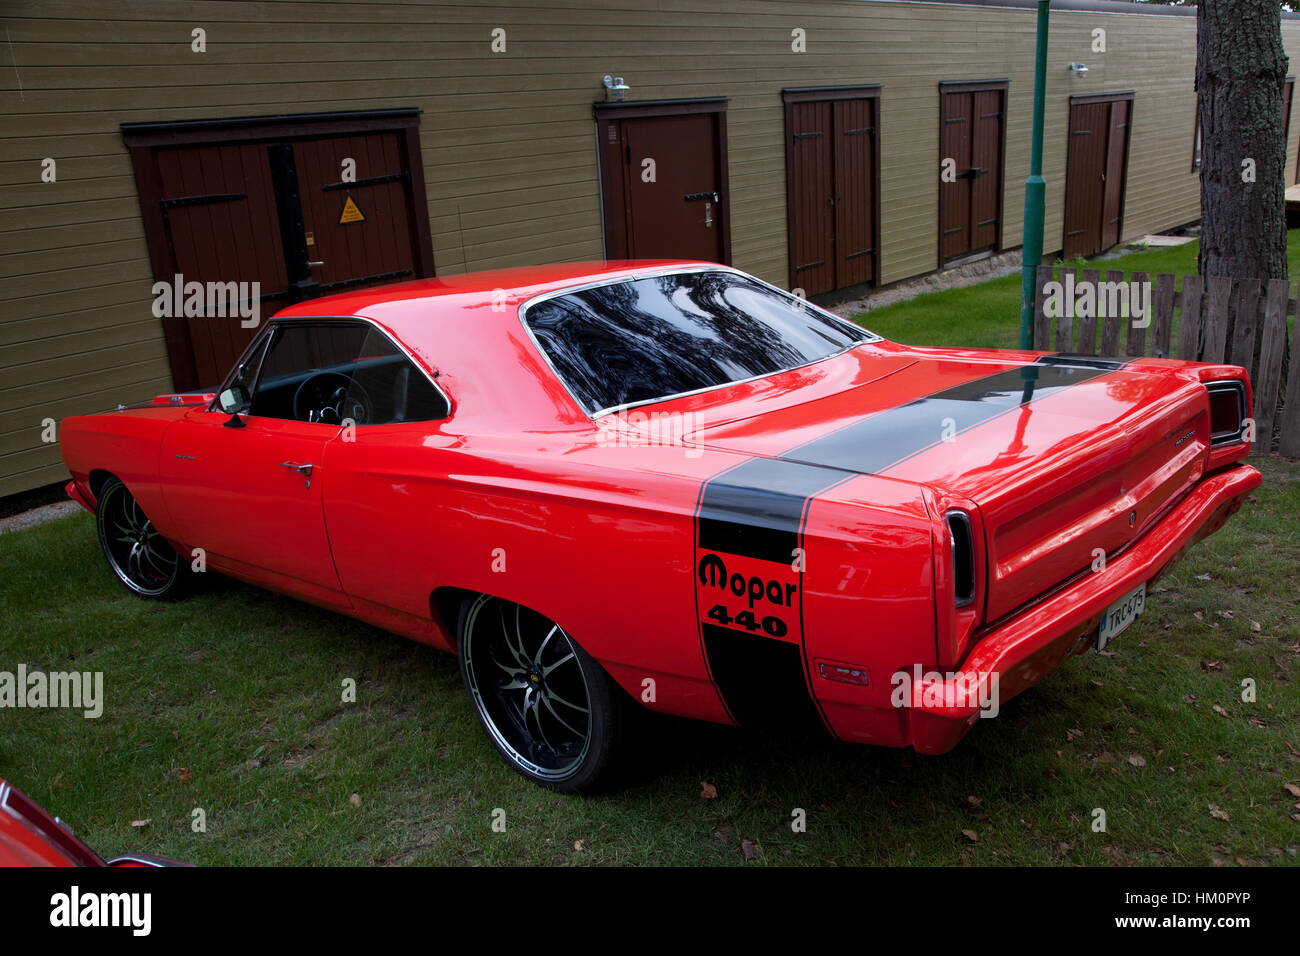 Car meet with American muscle cars in Sweden Stock Photo: 132783722 ...